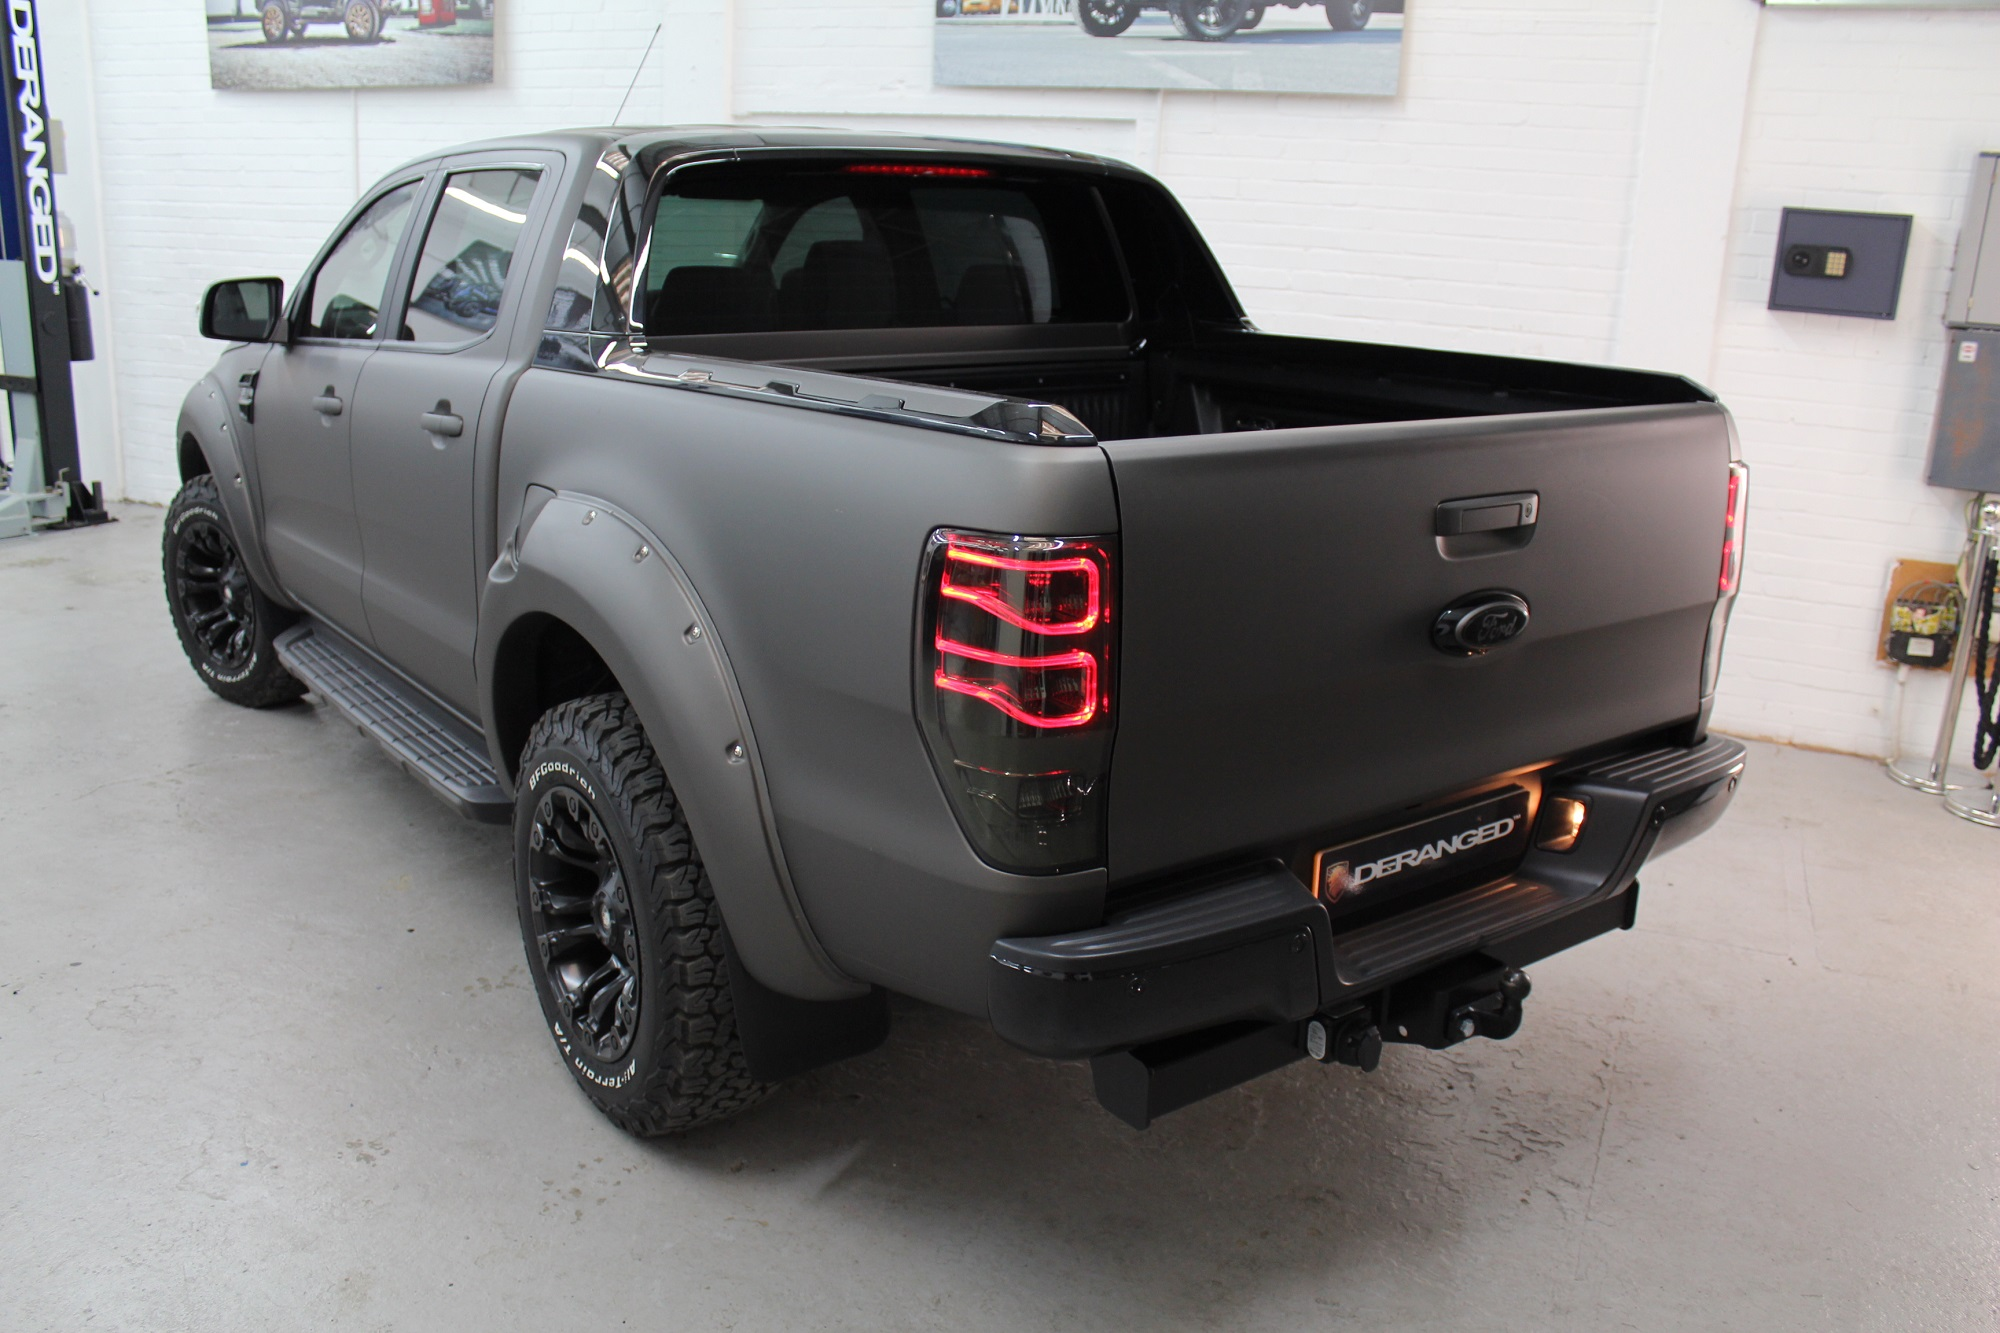 Ford Ranger White 2017 >> 2018(18) DERANGED™ Ford Ranger 4x4 DCB 3.2 TDCI Auto | Deranged Vehicles.